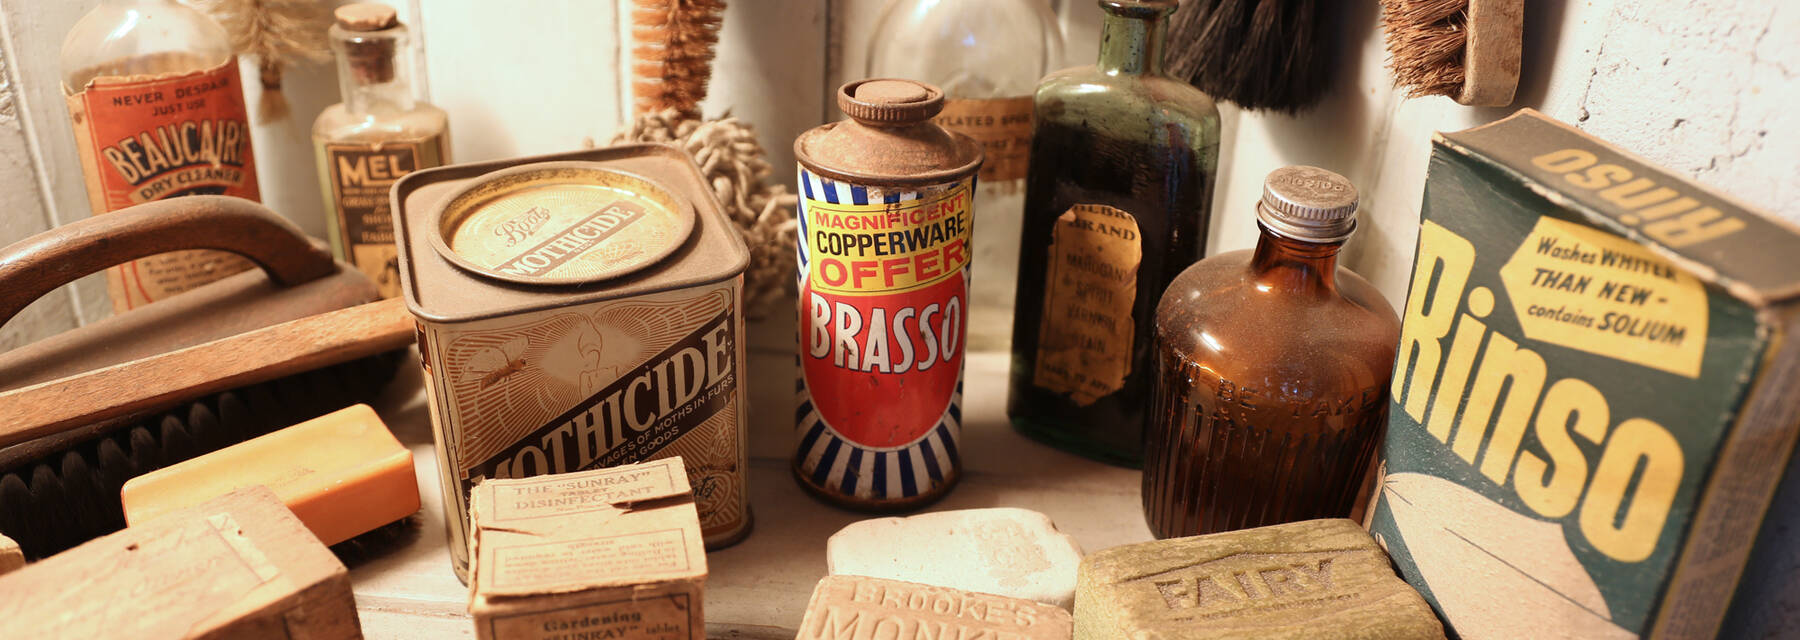 Household cleaning products on a shelf in the Tenement House kitchen